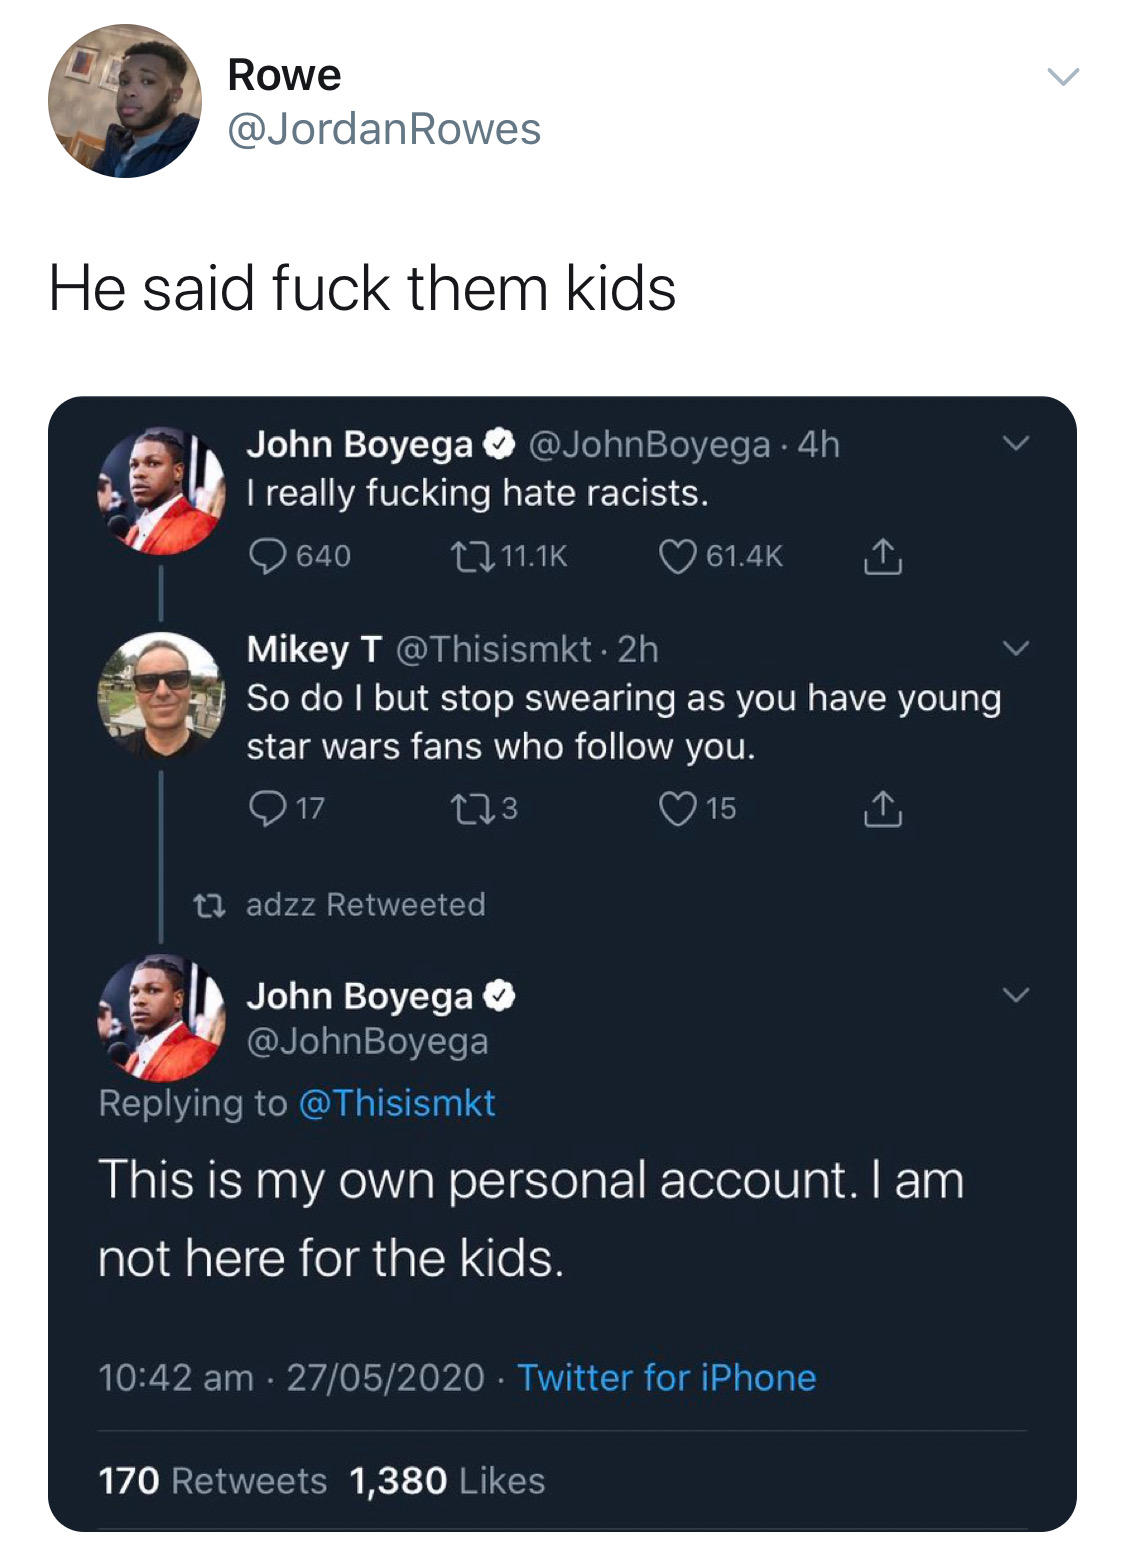 """A conversation on Twitter between John Boyega and a random person after Boyega tweeted """"I really fucking hate racists."""" The man told him to stop swearing and Boyega responded """"This is my own personal account. I am not here for the kids."""""""